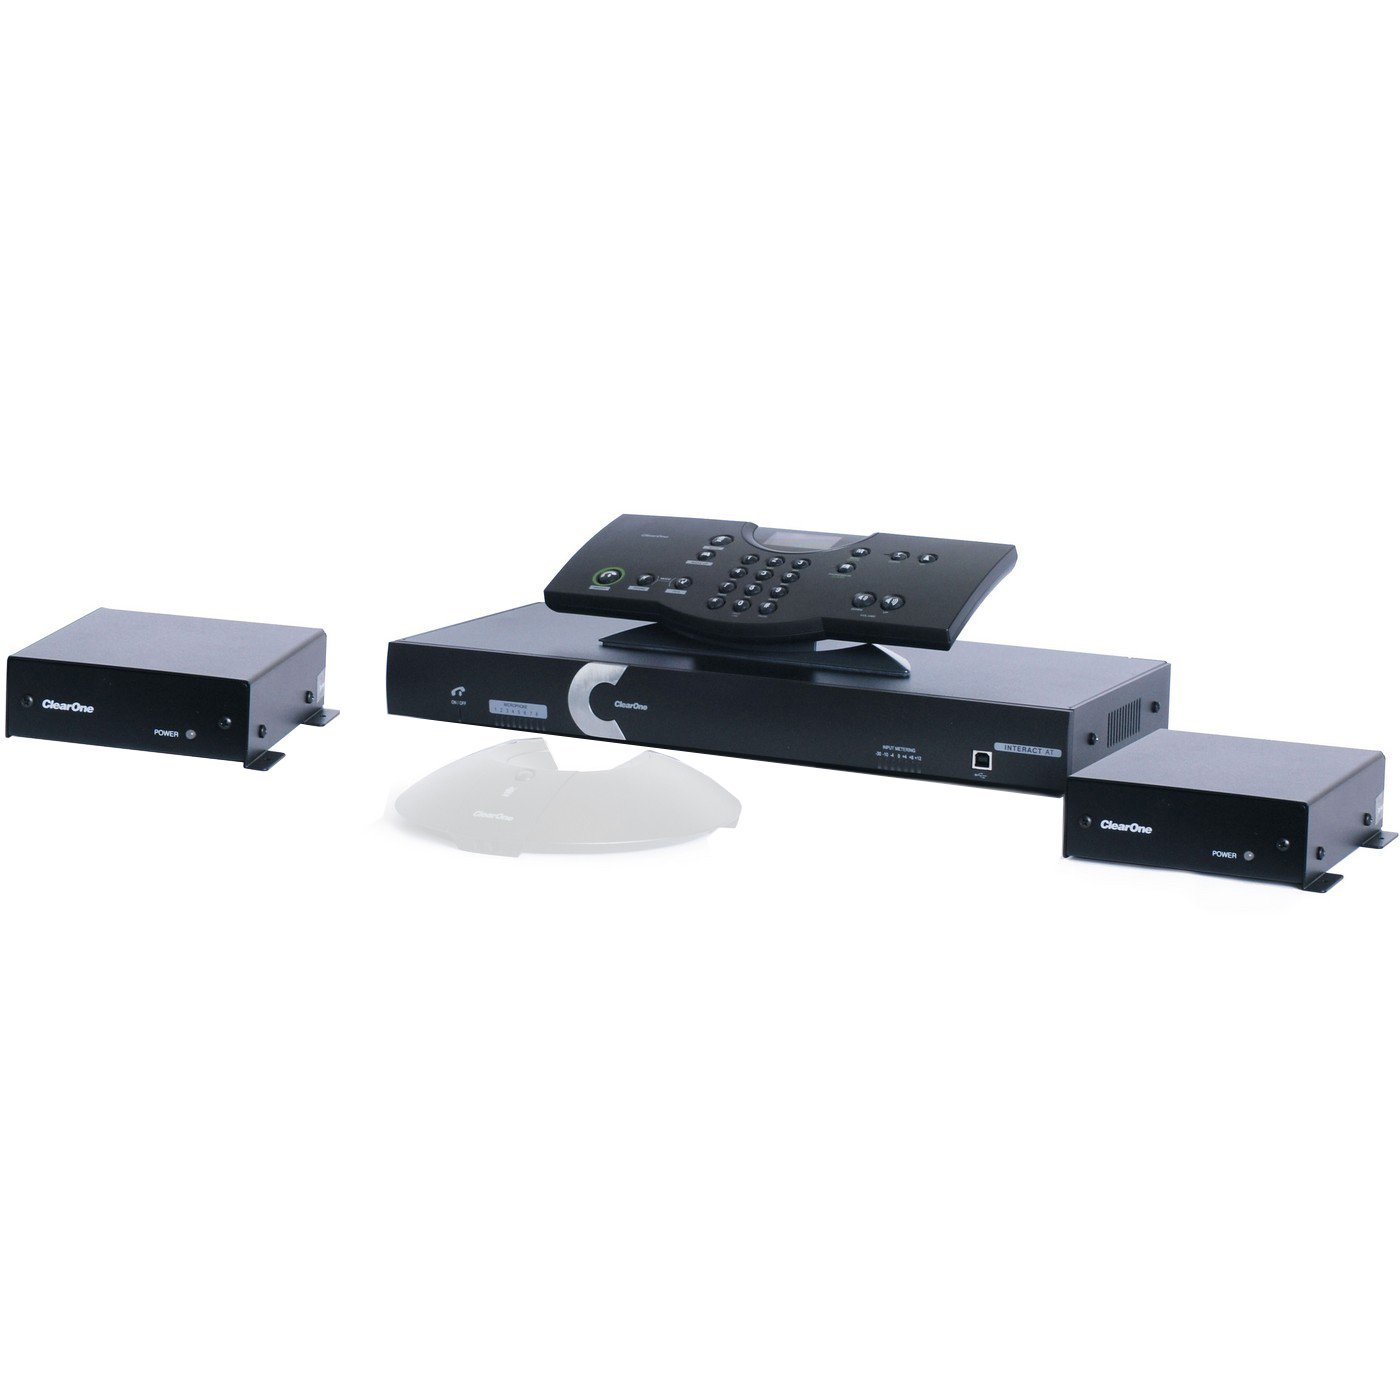 ClearOne Interact AT Bundle I | Complete Audio Conferencing Solution Two Microphone Box Wired Controller 930-154-500